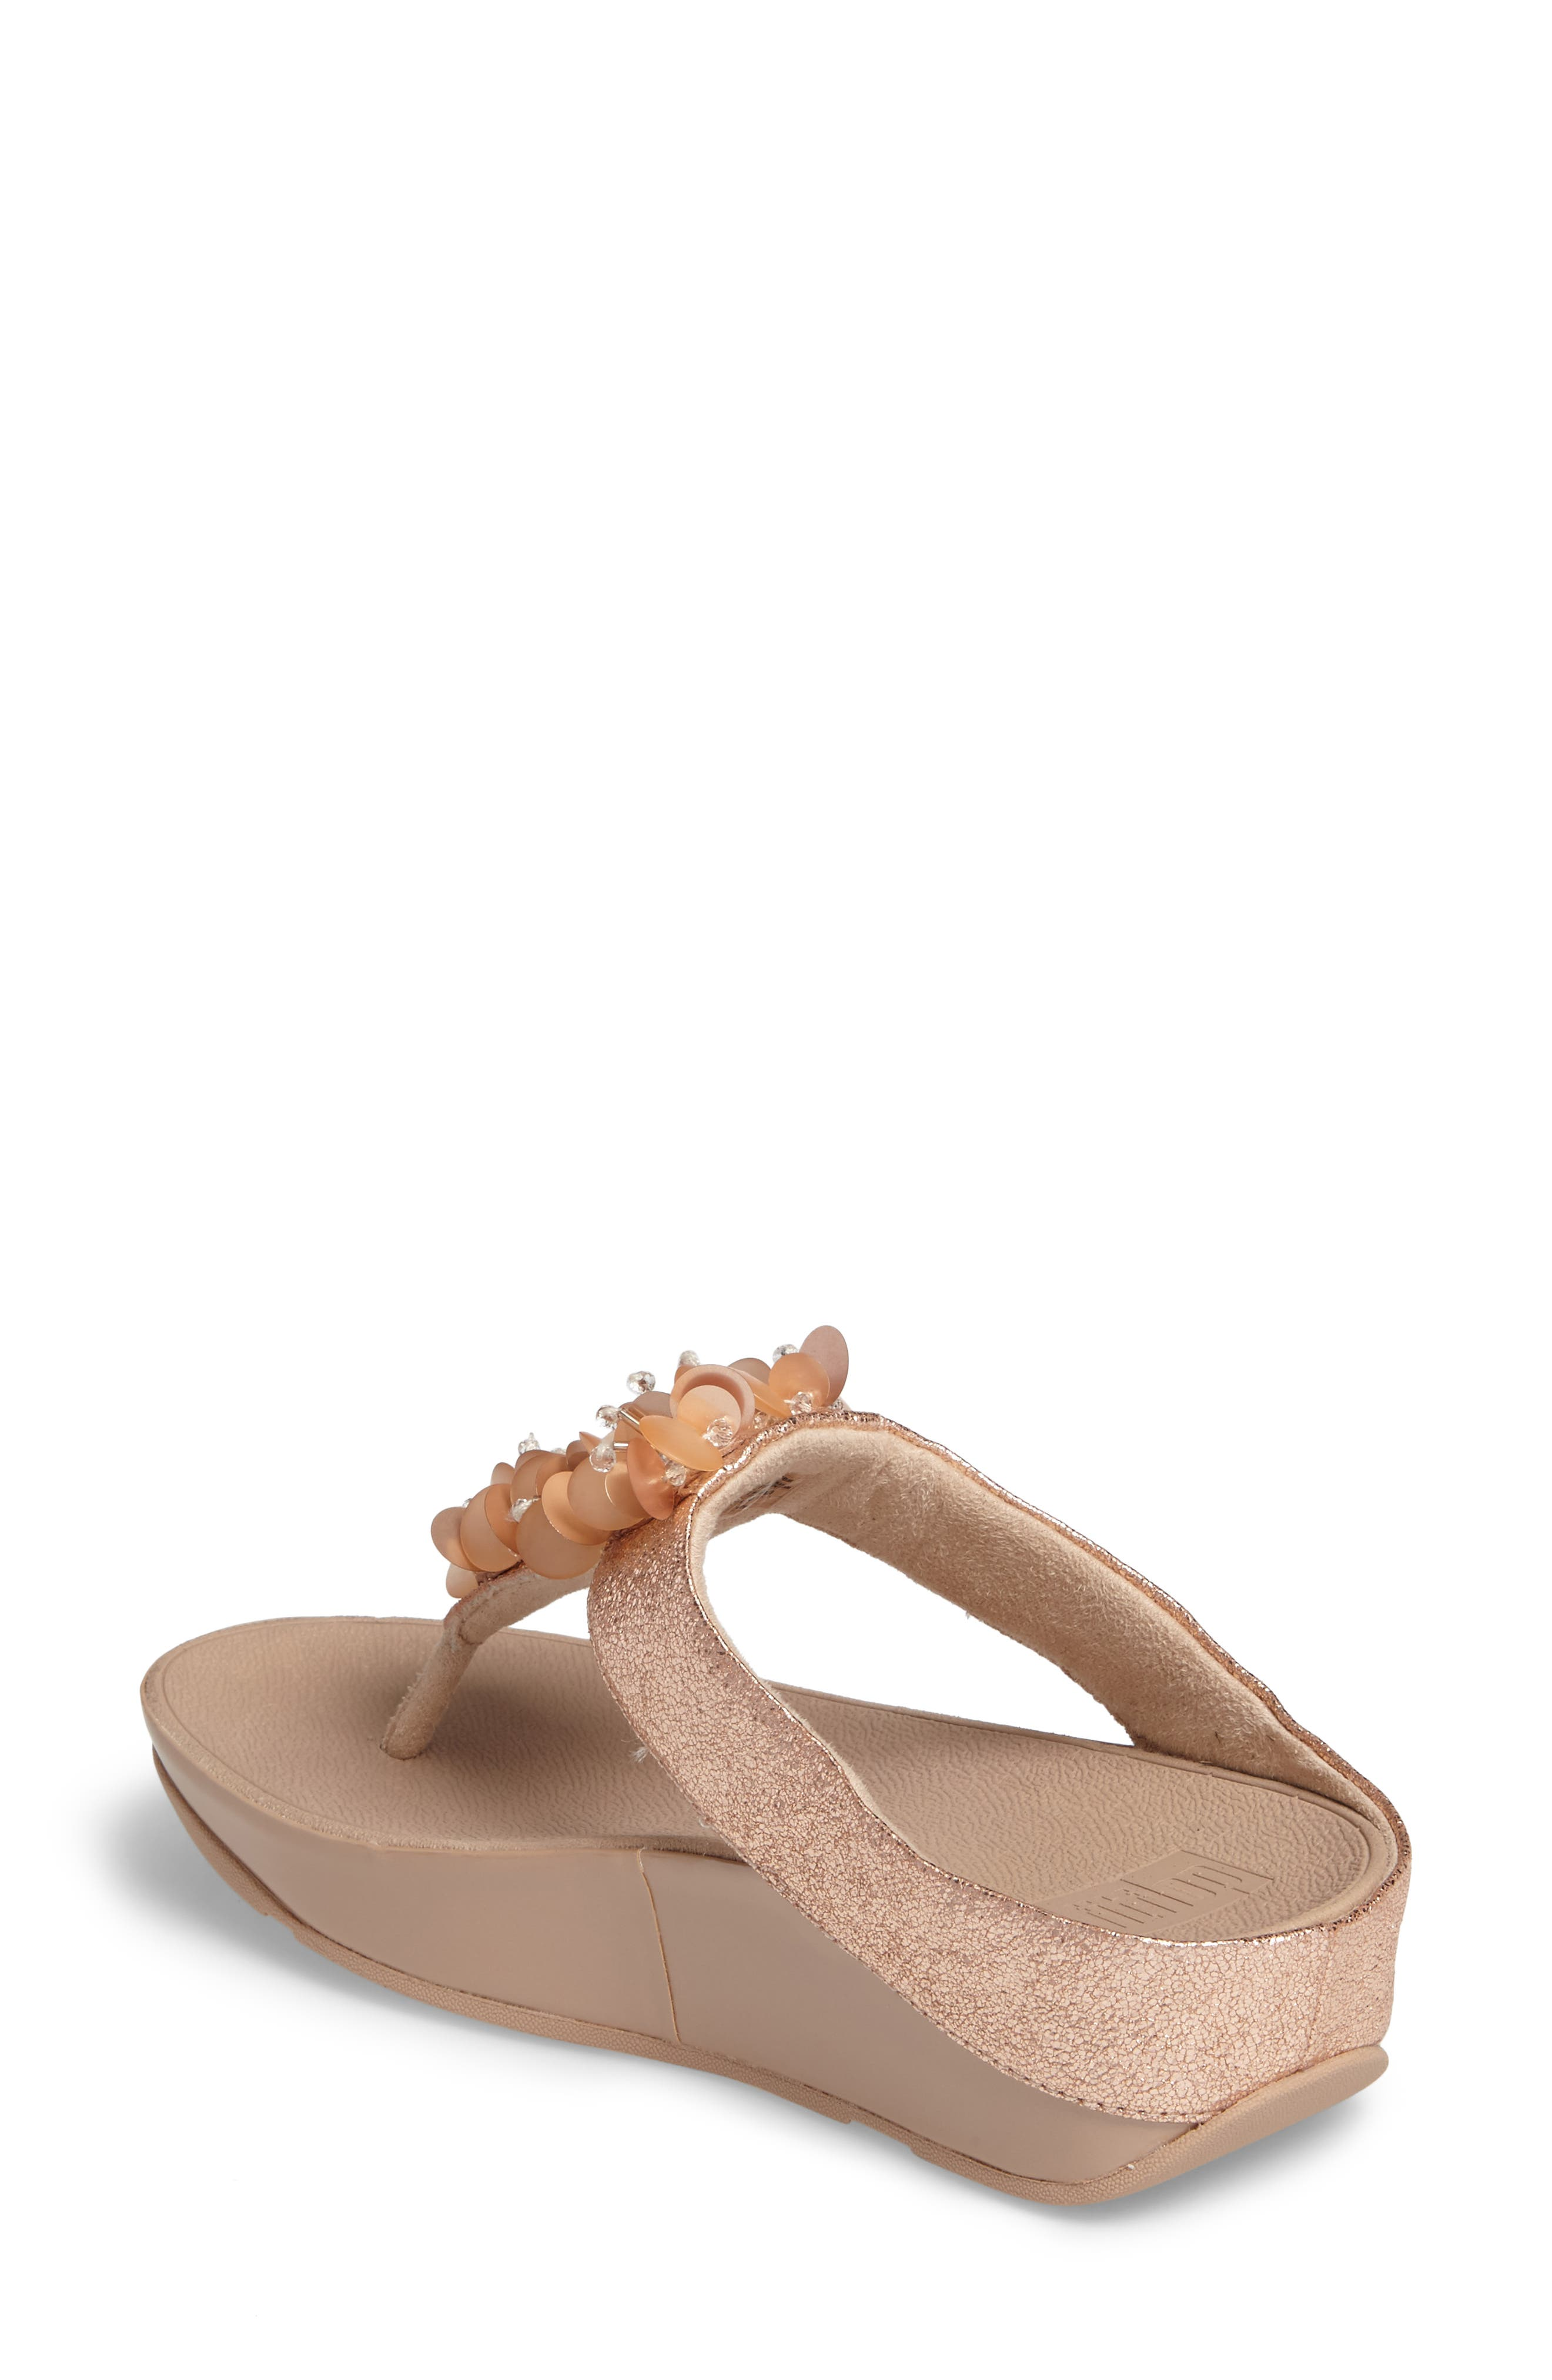 Boogaloo Sandal,                             Alternate thumbnail 2, color,                             Rose Gold Leather